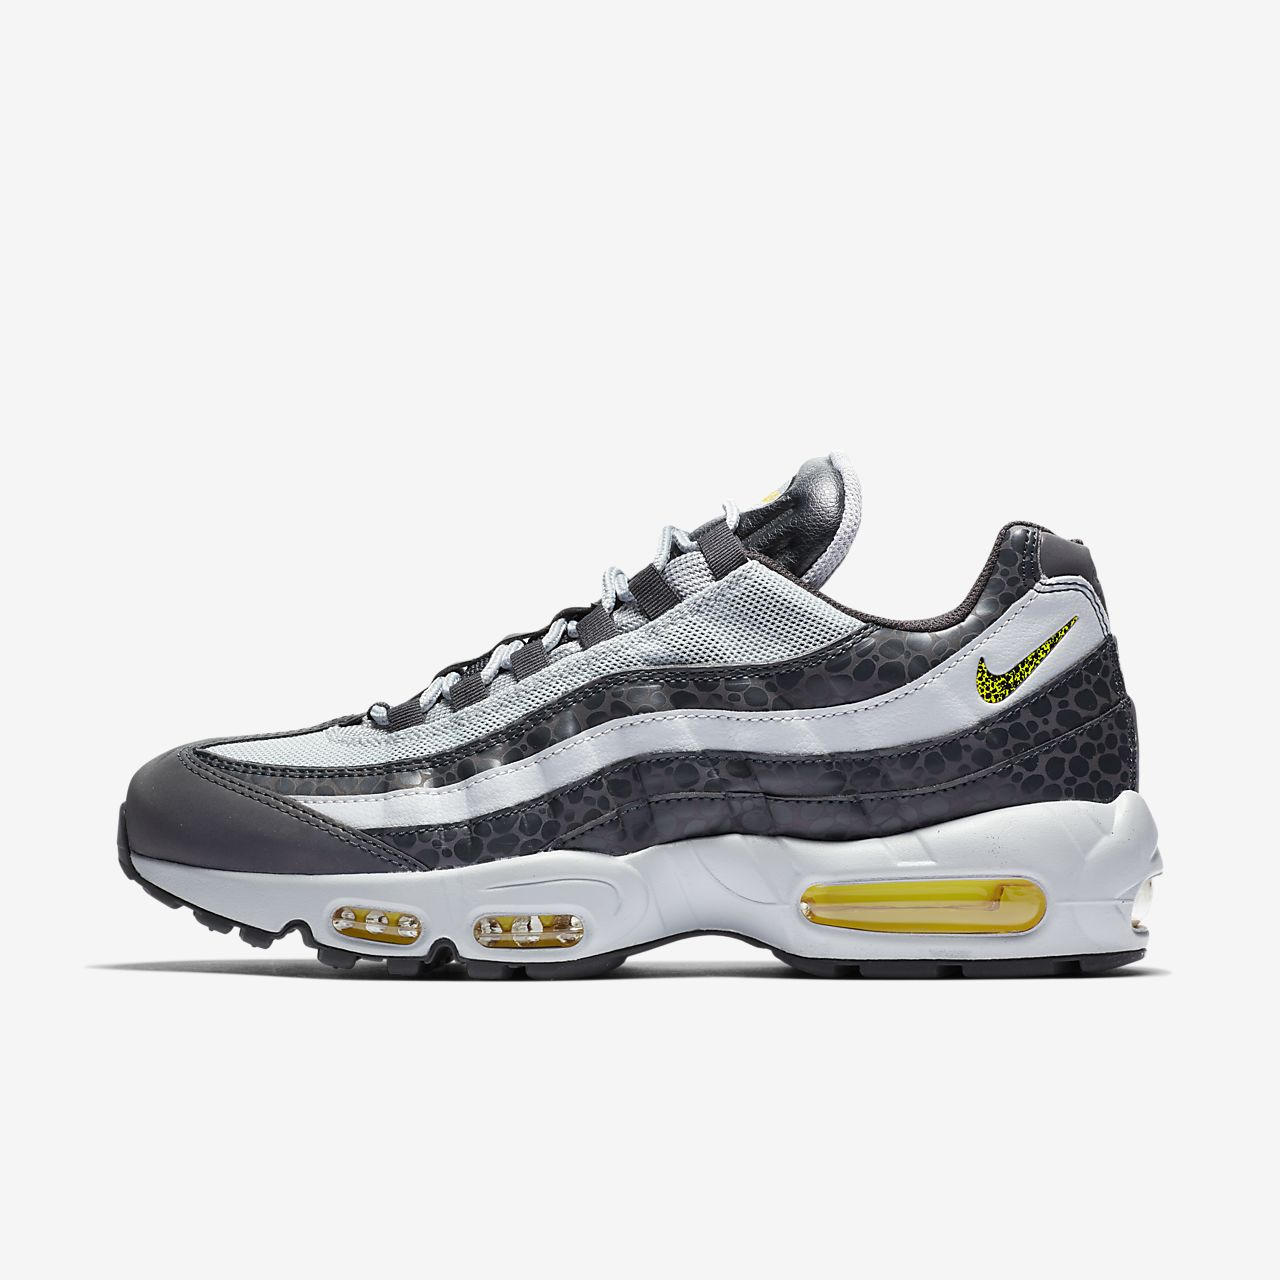 hot sale online f1aa5 6e937 ... Nike Air Max 95 SE Men s Shoe